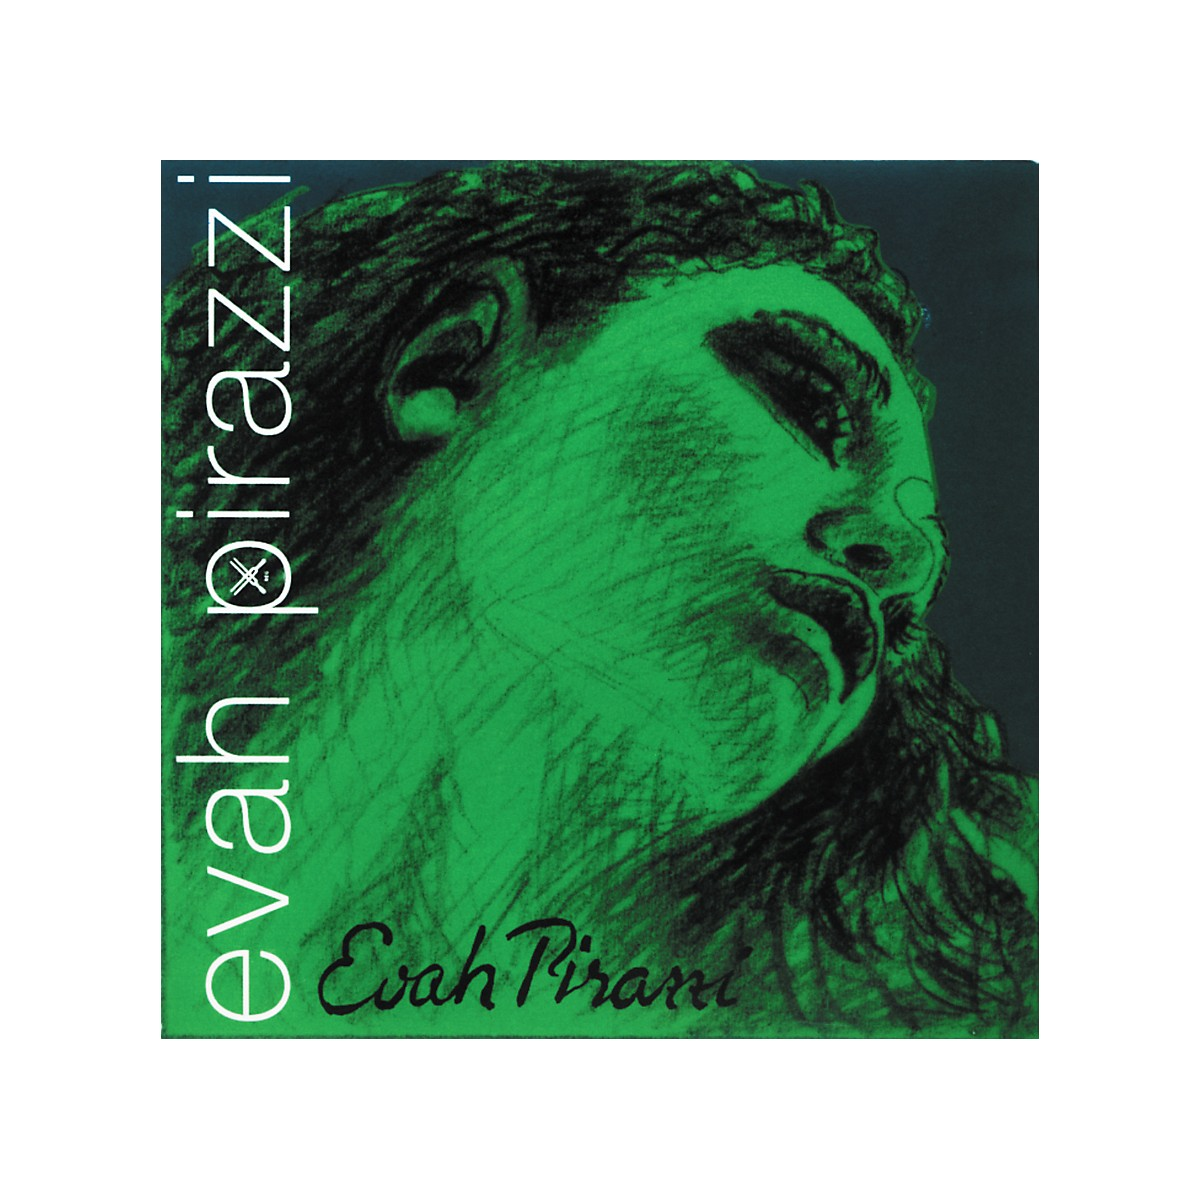 Pirastro Evah Pirazzi Series Cello G String